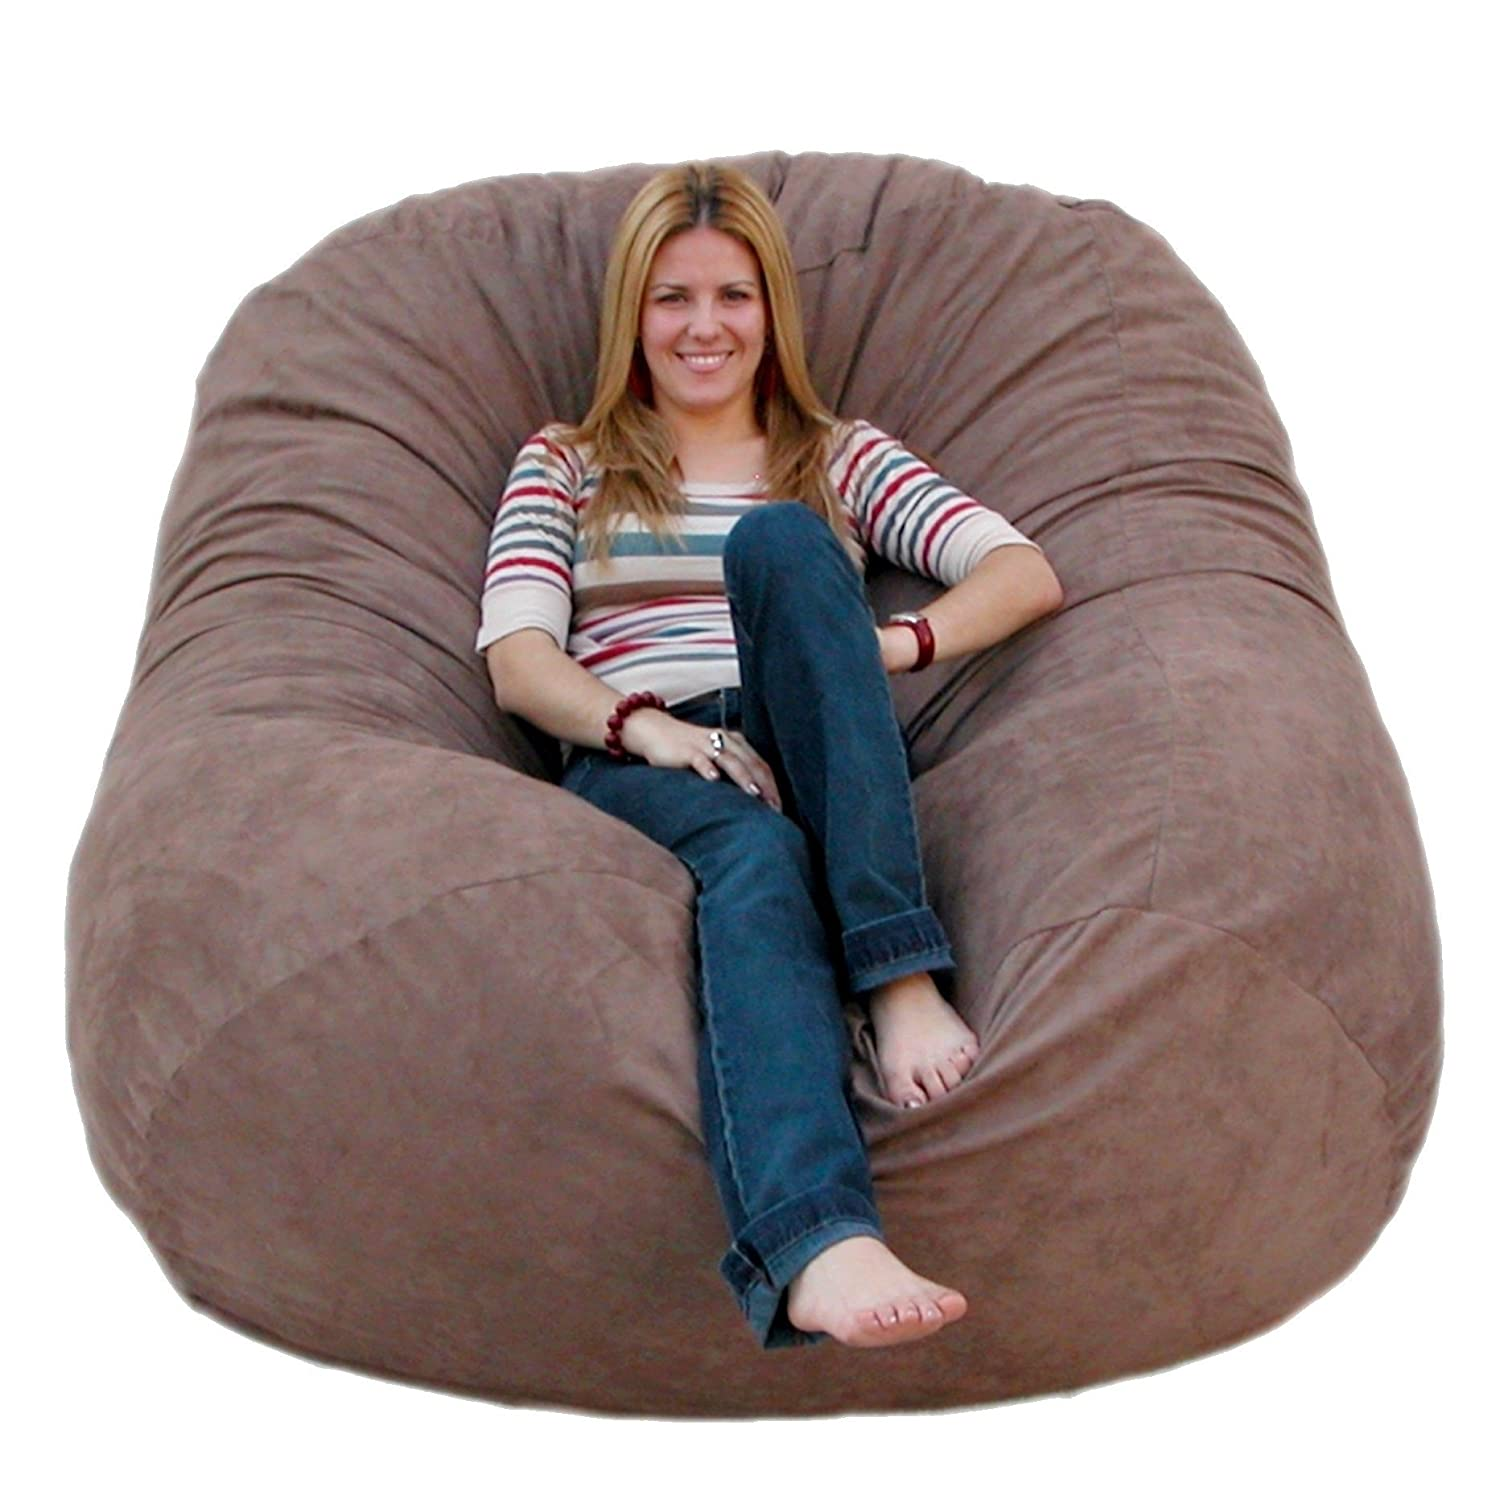 Bean bag chairs for adults - Amazon Com Cozy Sack 6 Feet Bean Bag Chair Large Grey Kitchen Dining